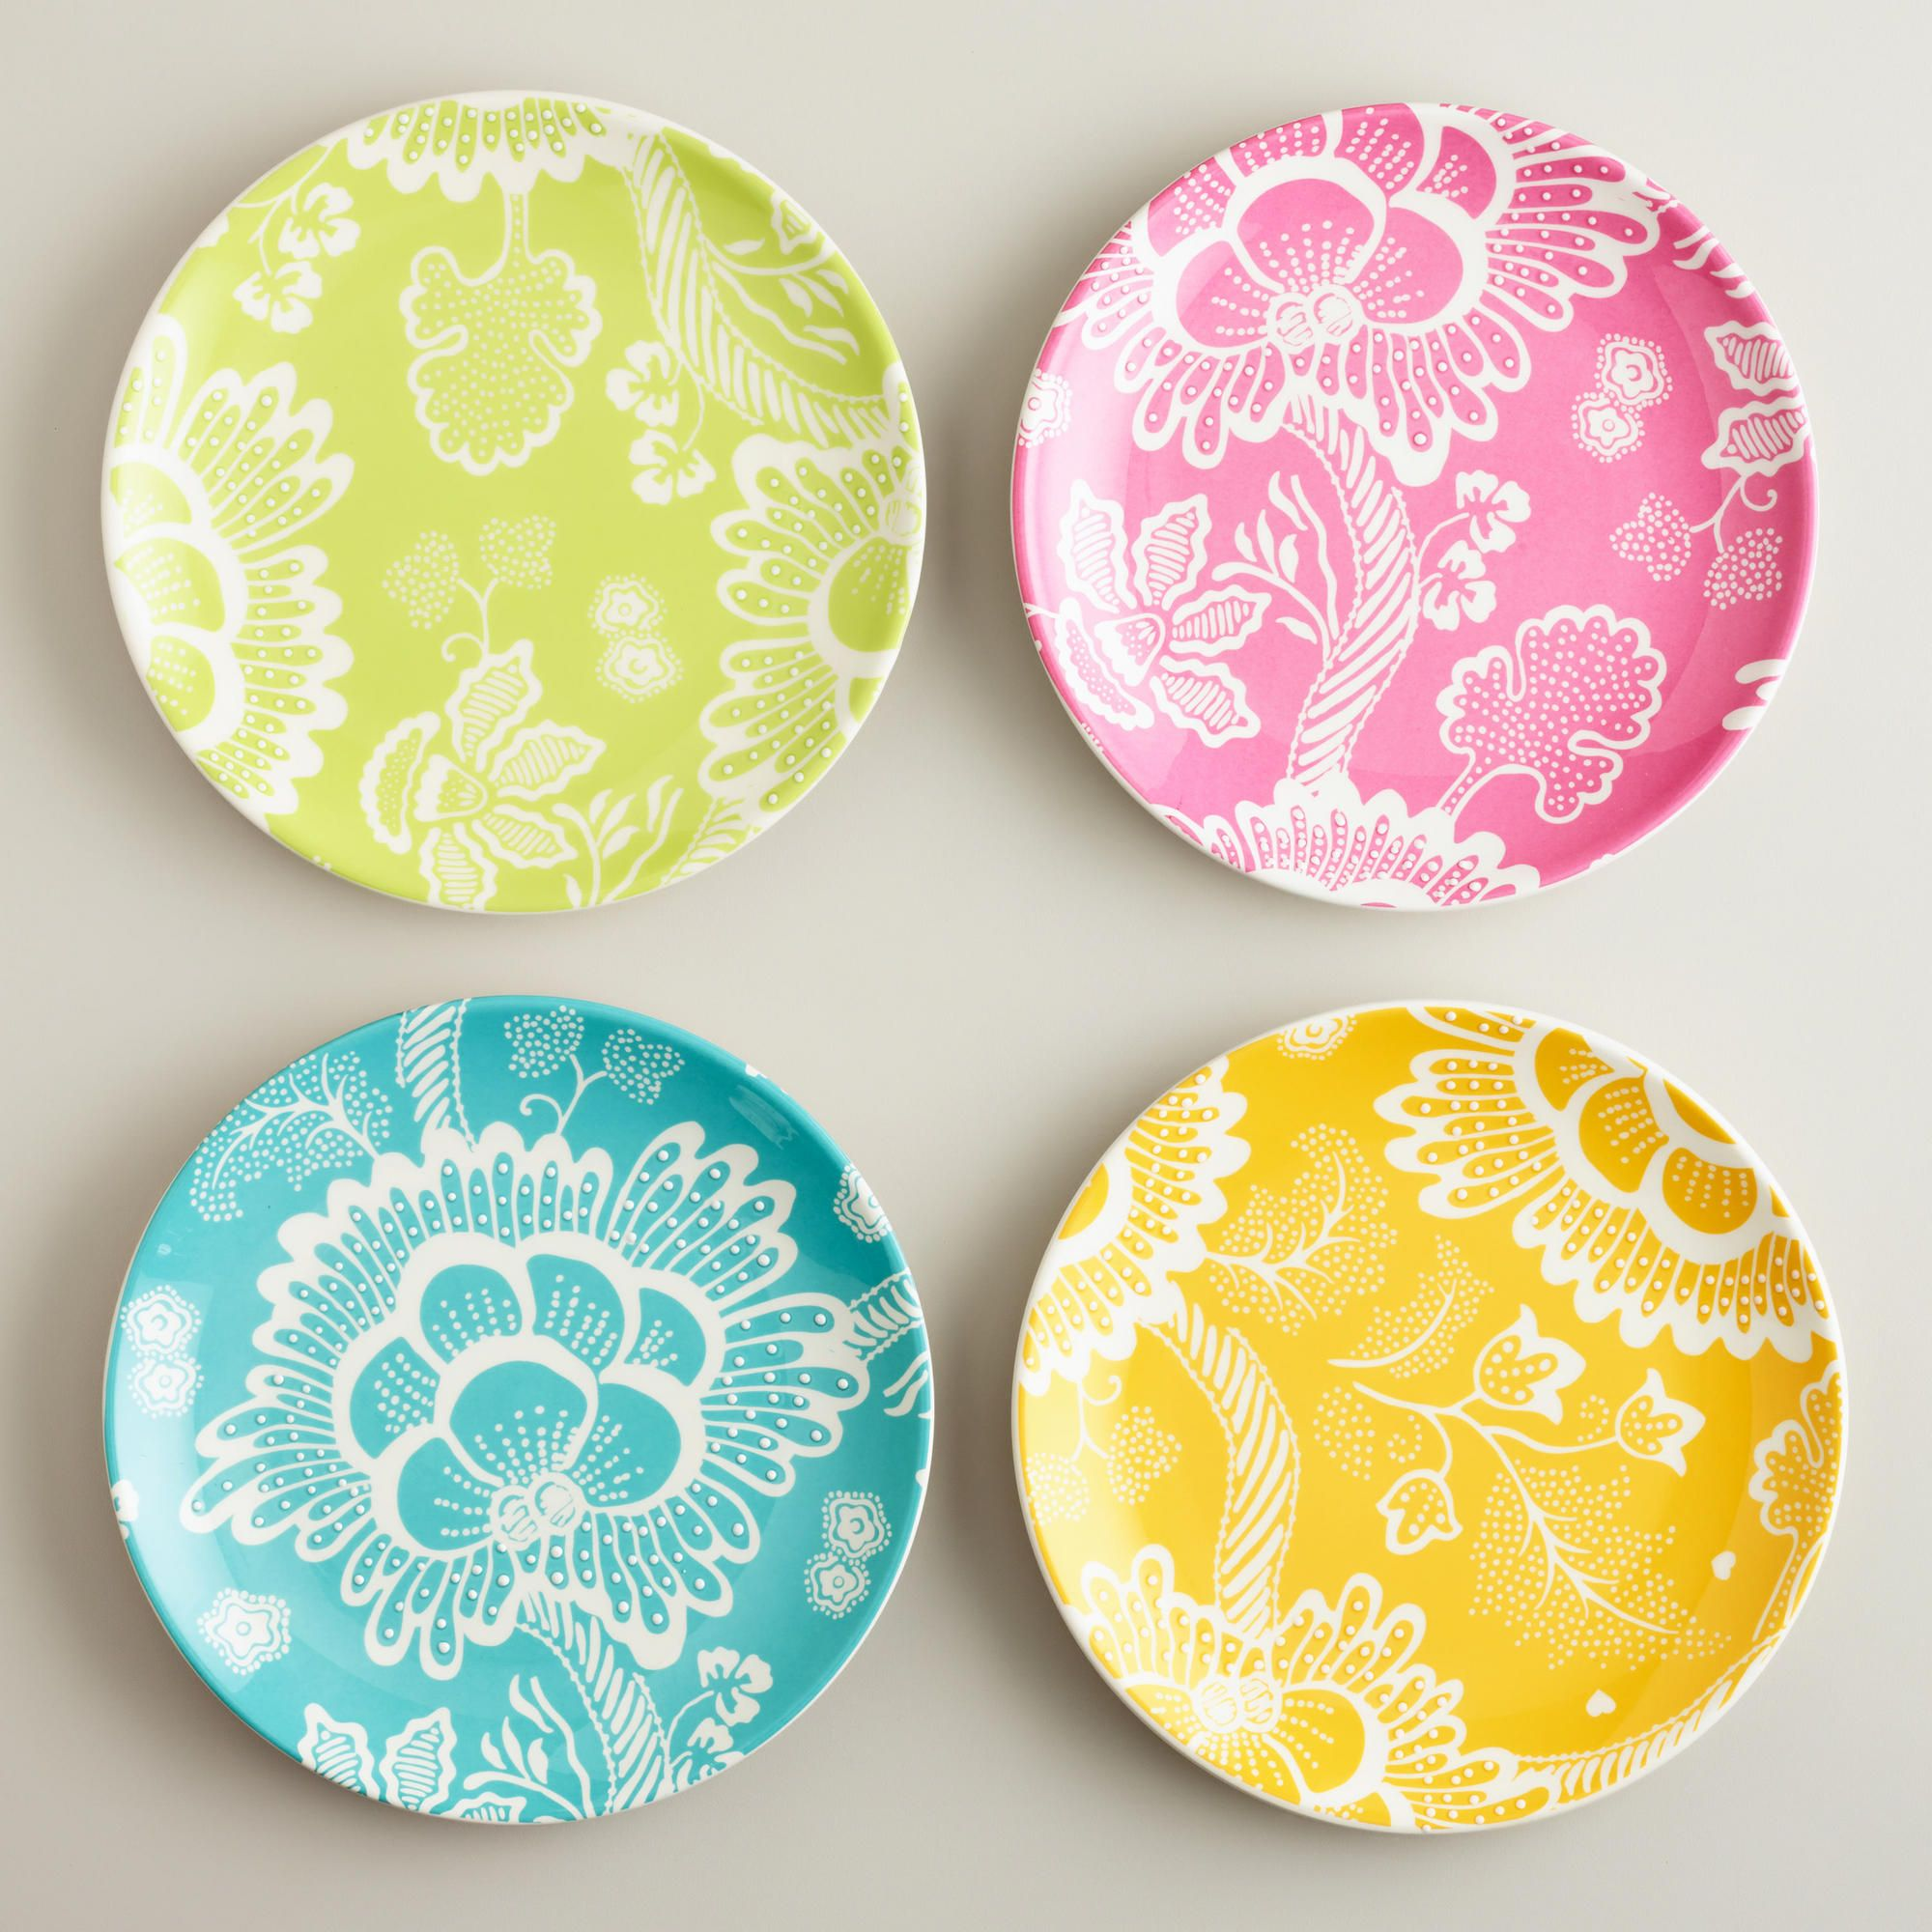 Spring Floral Plates, Set of 4 | Pottery, Plate wall and Kitchens